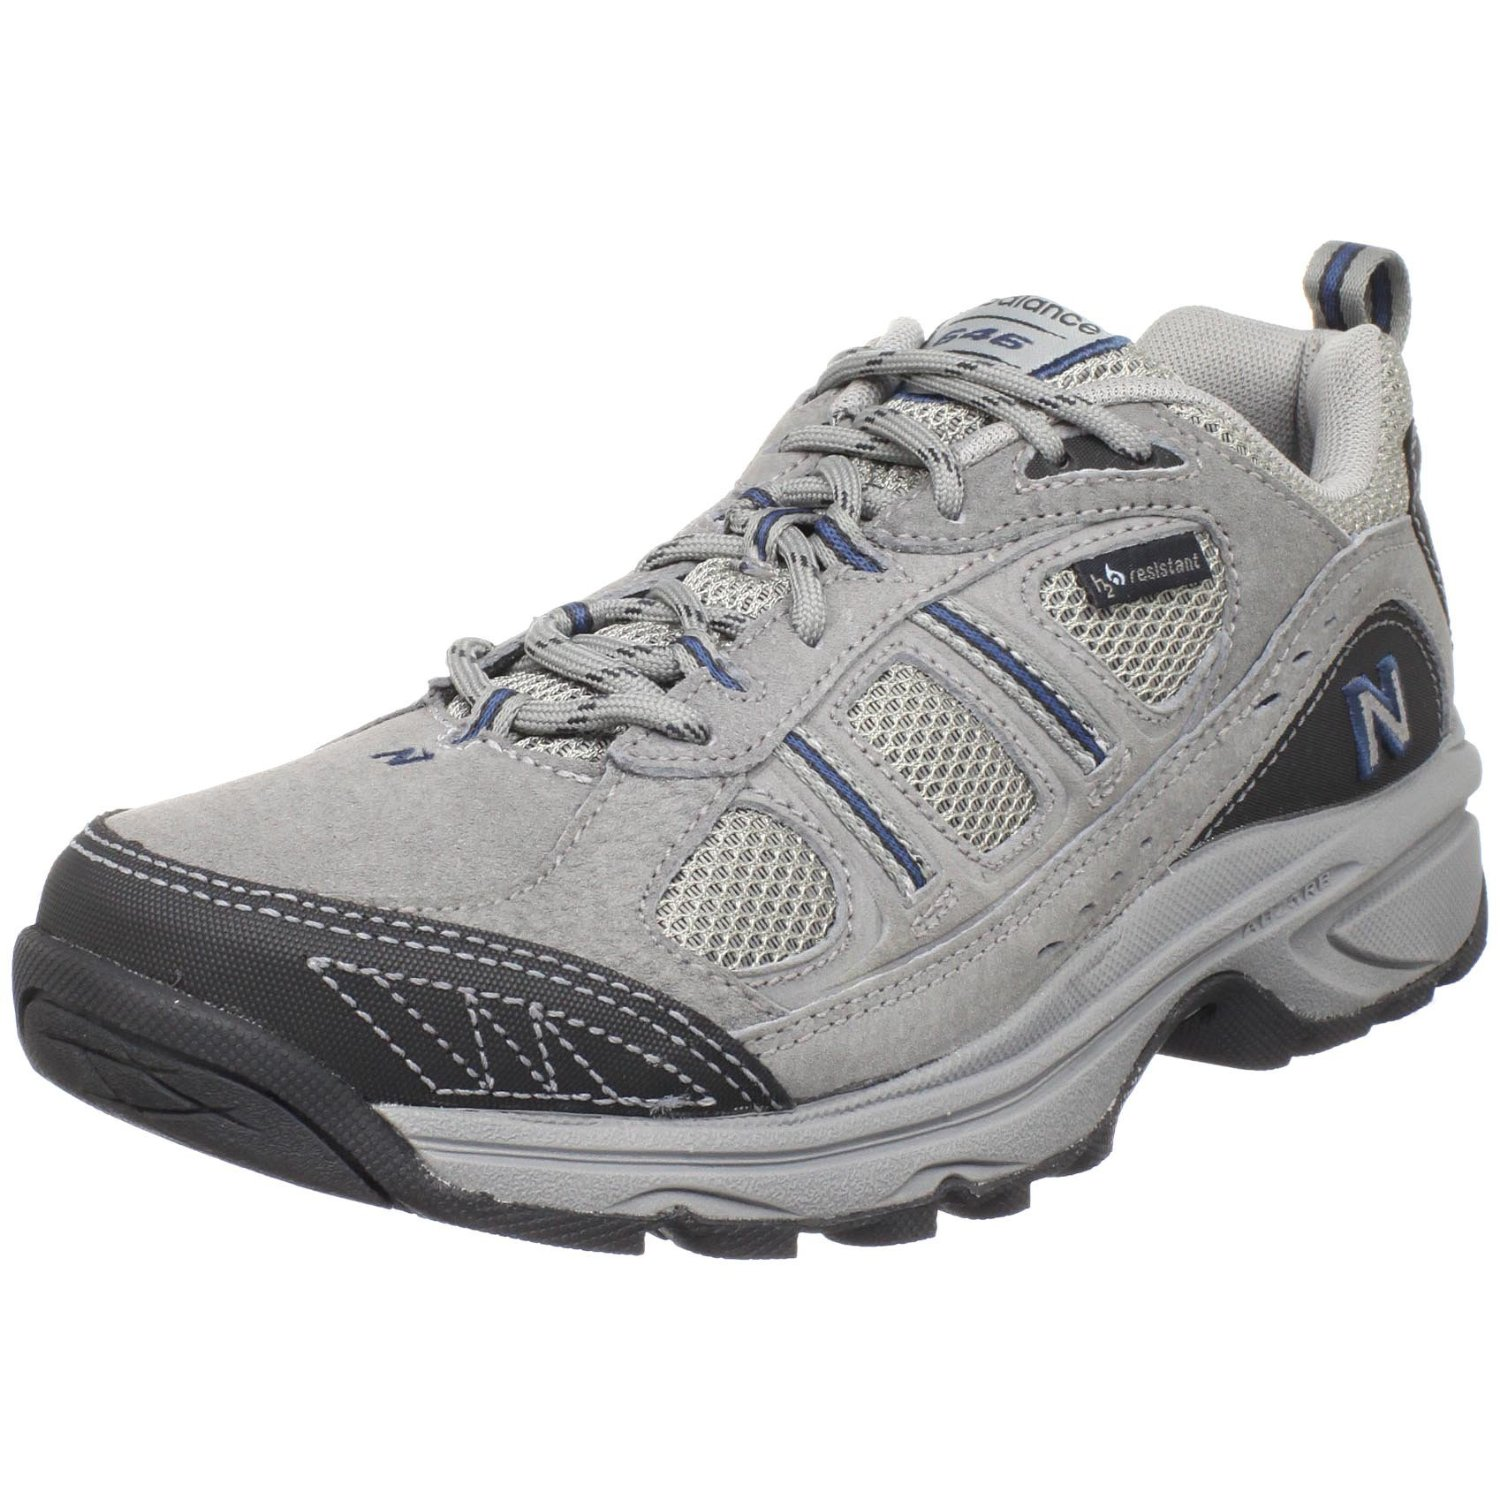 New Balance Mens Mw646 Outdoor Country Walking Shoe In